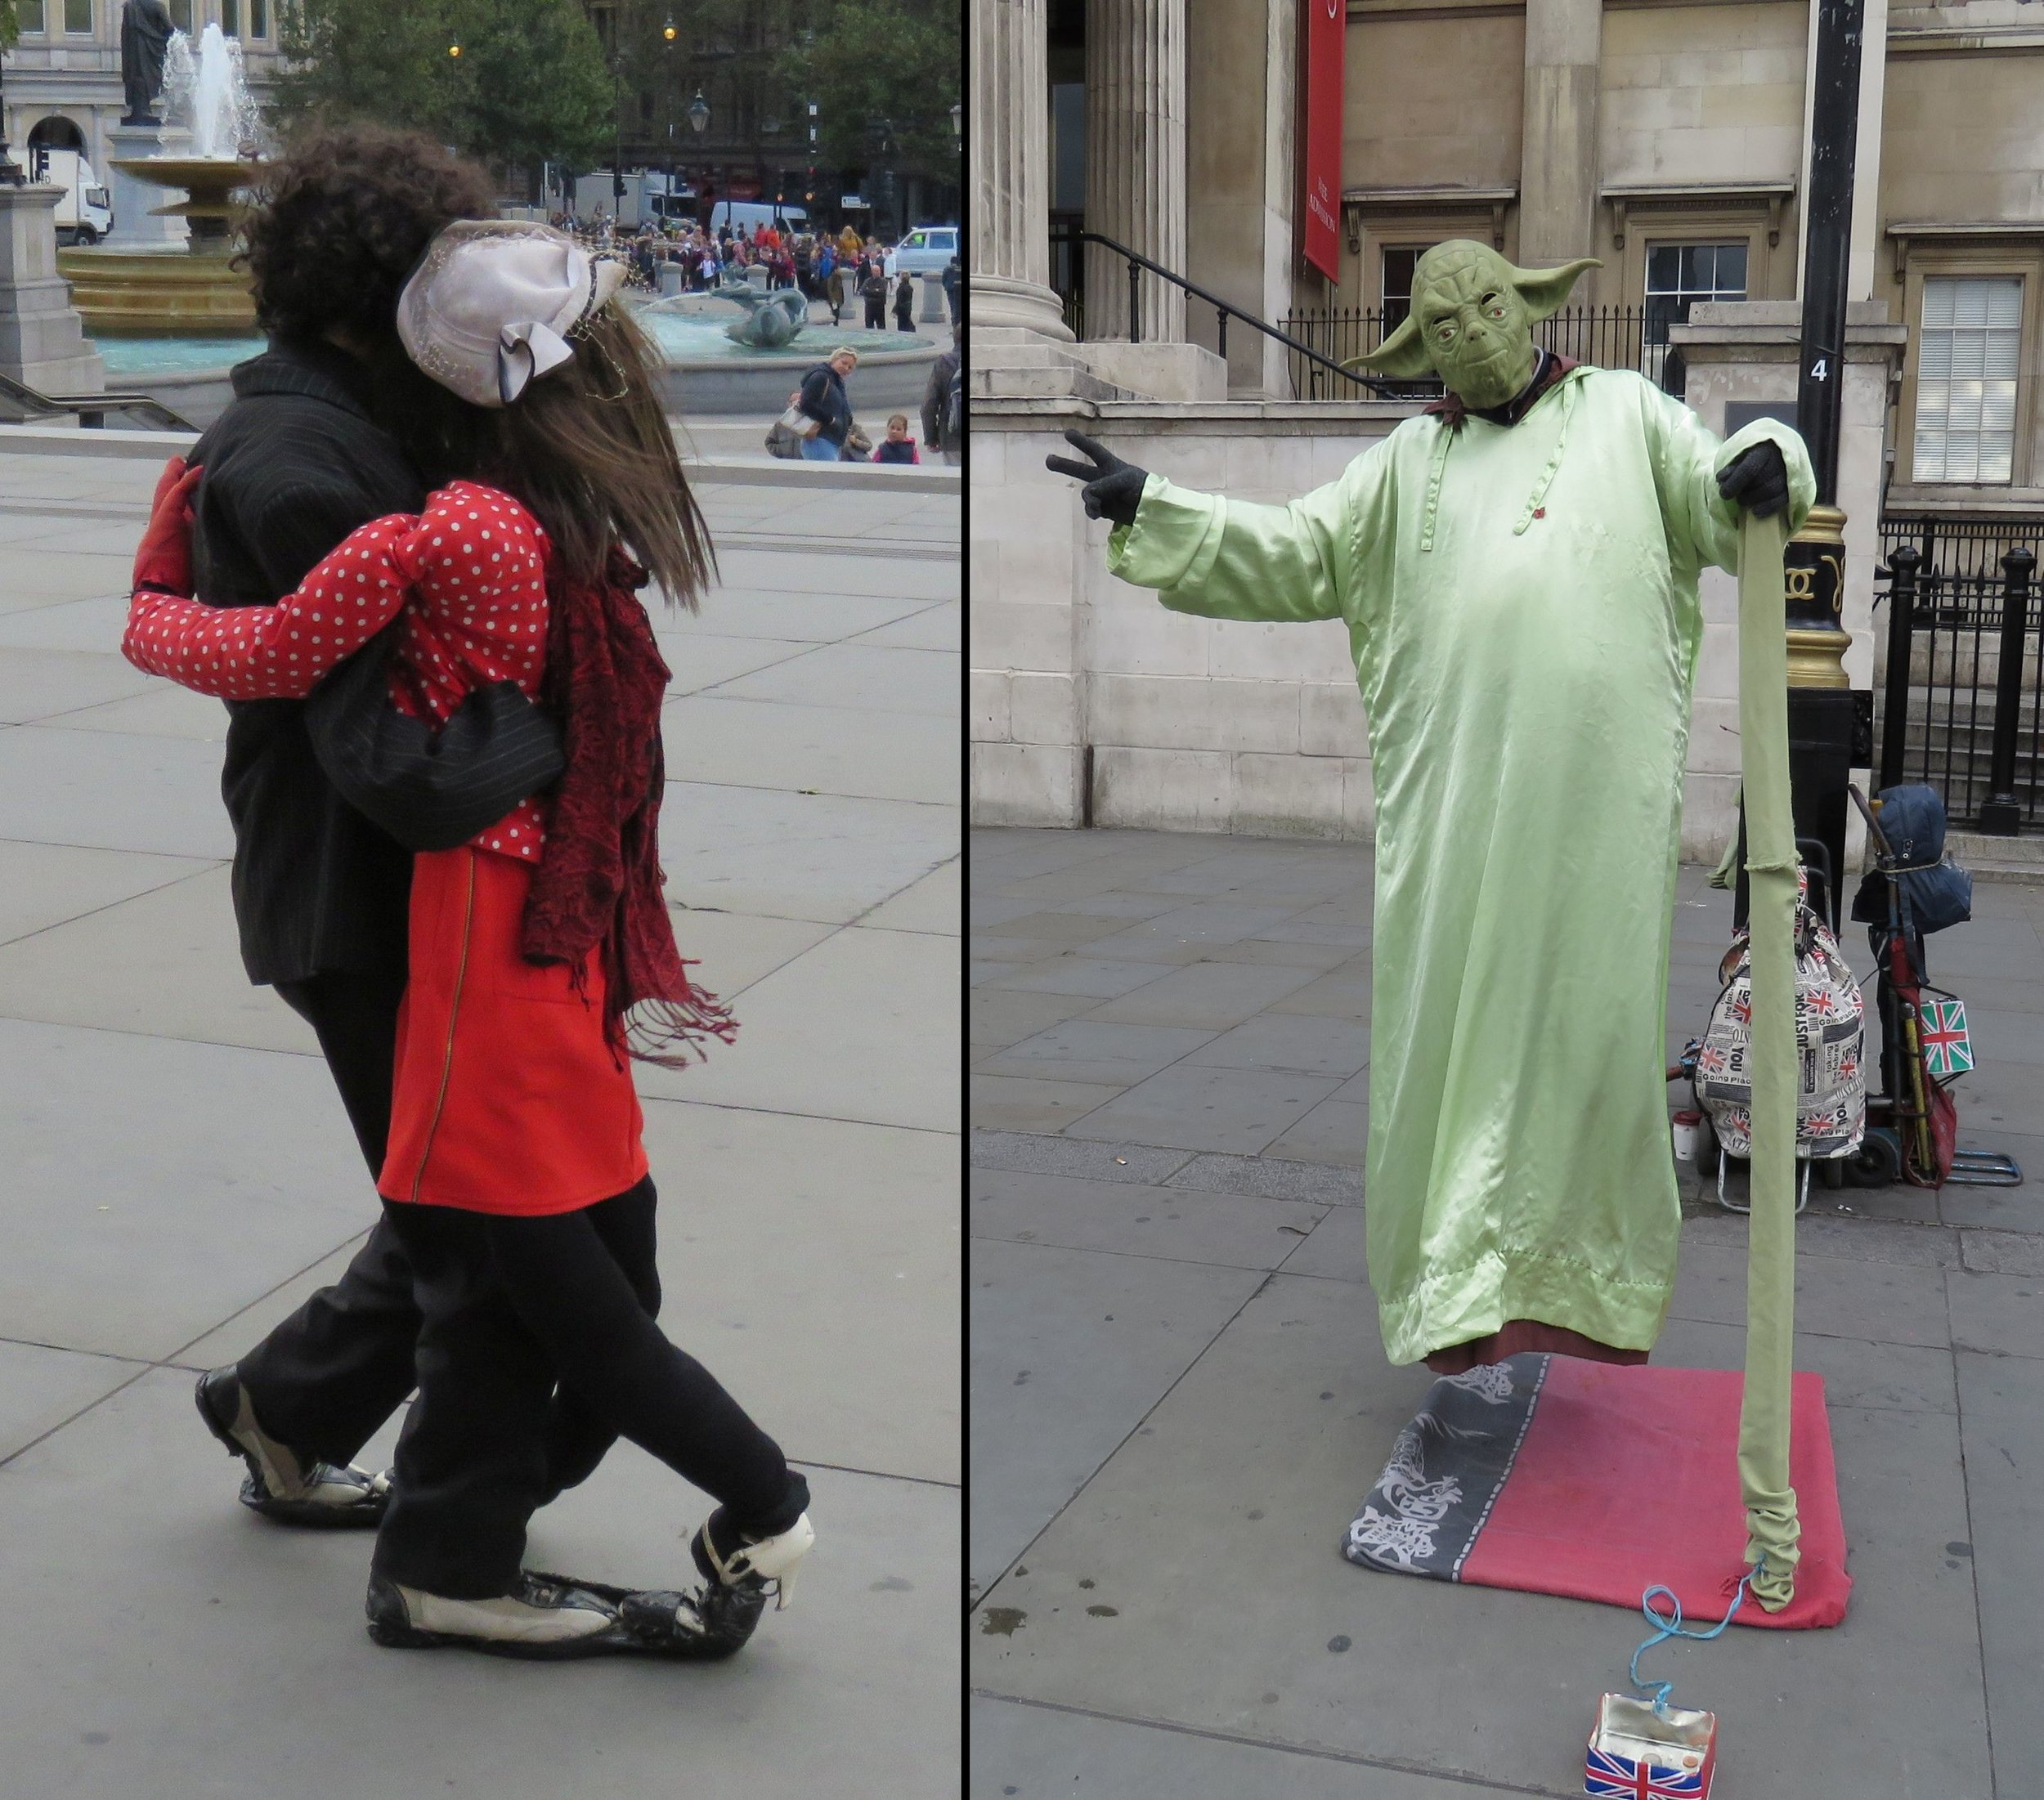 Buskers in front of the National Gallery.  I still can't figure out how Yoda is supported.